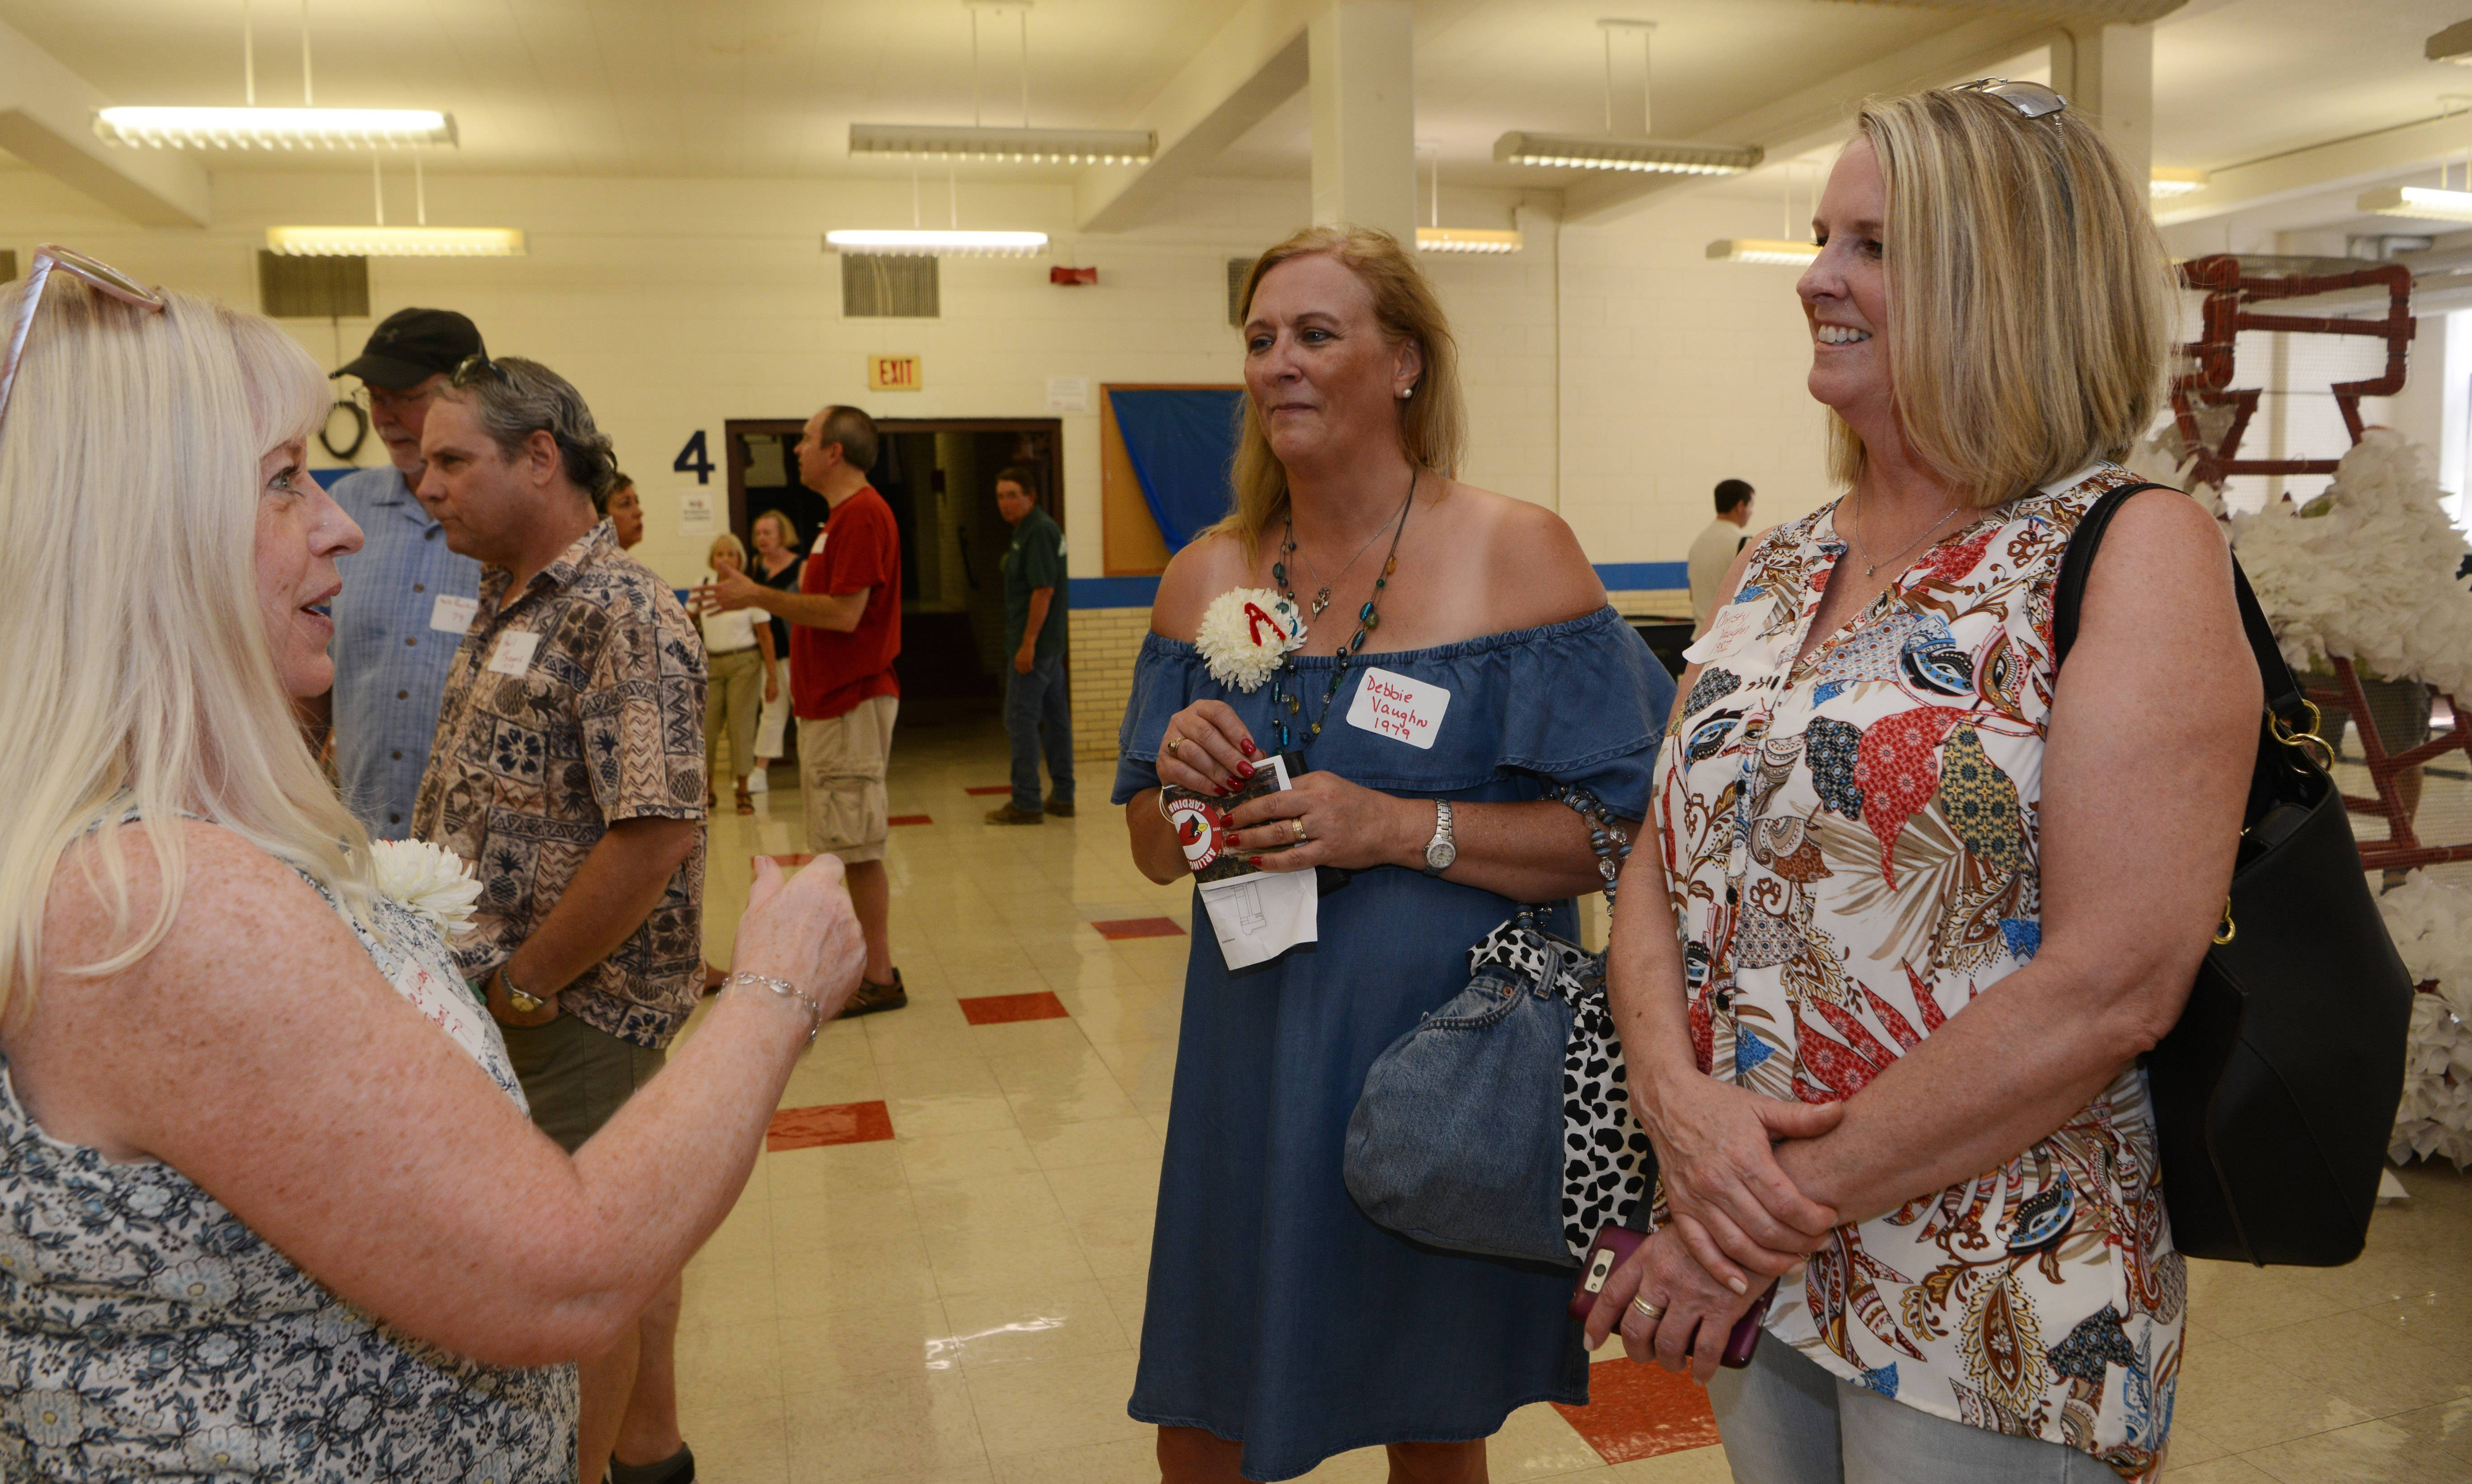 Sue Liljeberg Thoms of the class of 1979 chats with Debbie Vaughan '79 and her sister, Christy Vaughan '82 during the Arlington High School all-class homecoming, held at the former school building, which is now Christian Liberty Academy, in Arlington Heights Saturday.